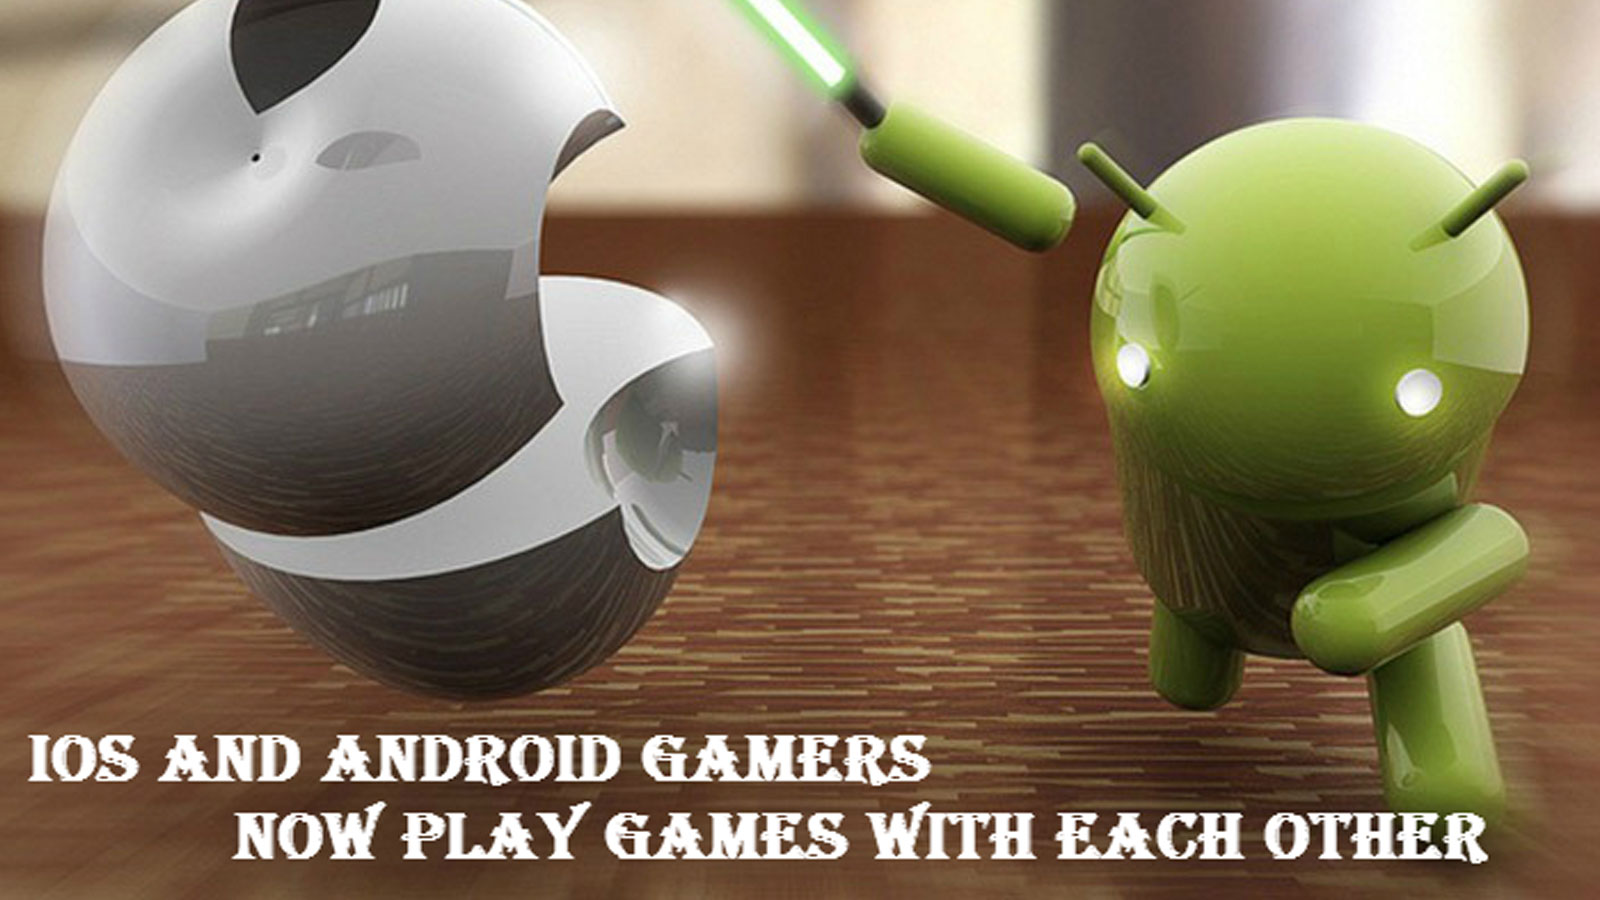 iOS and Android Gamers can now play games with each other